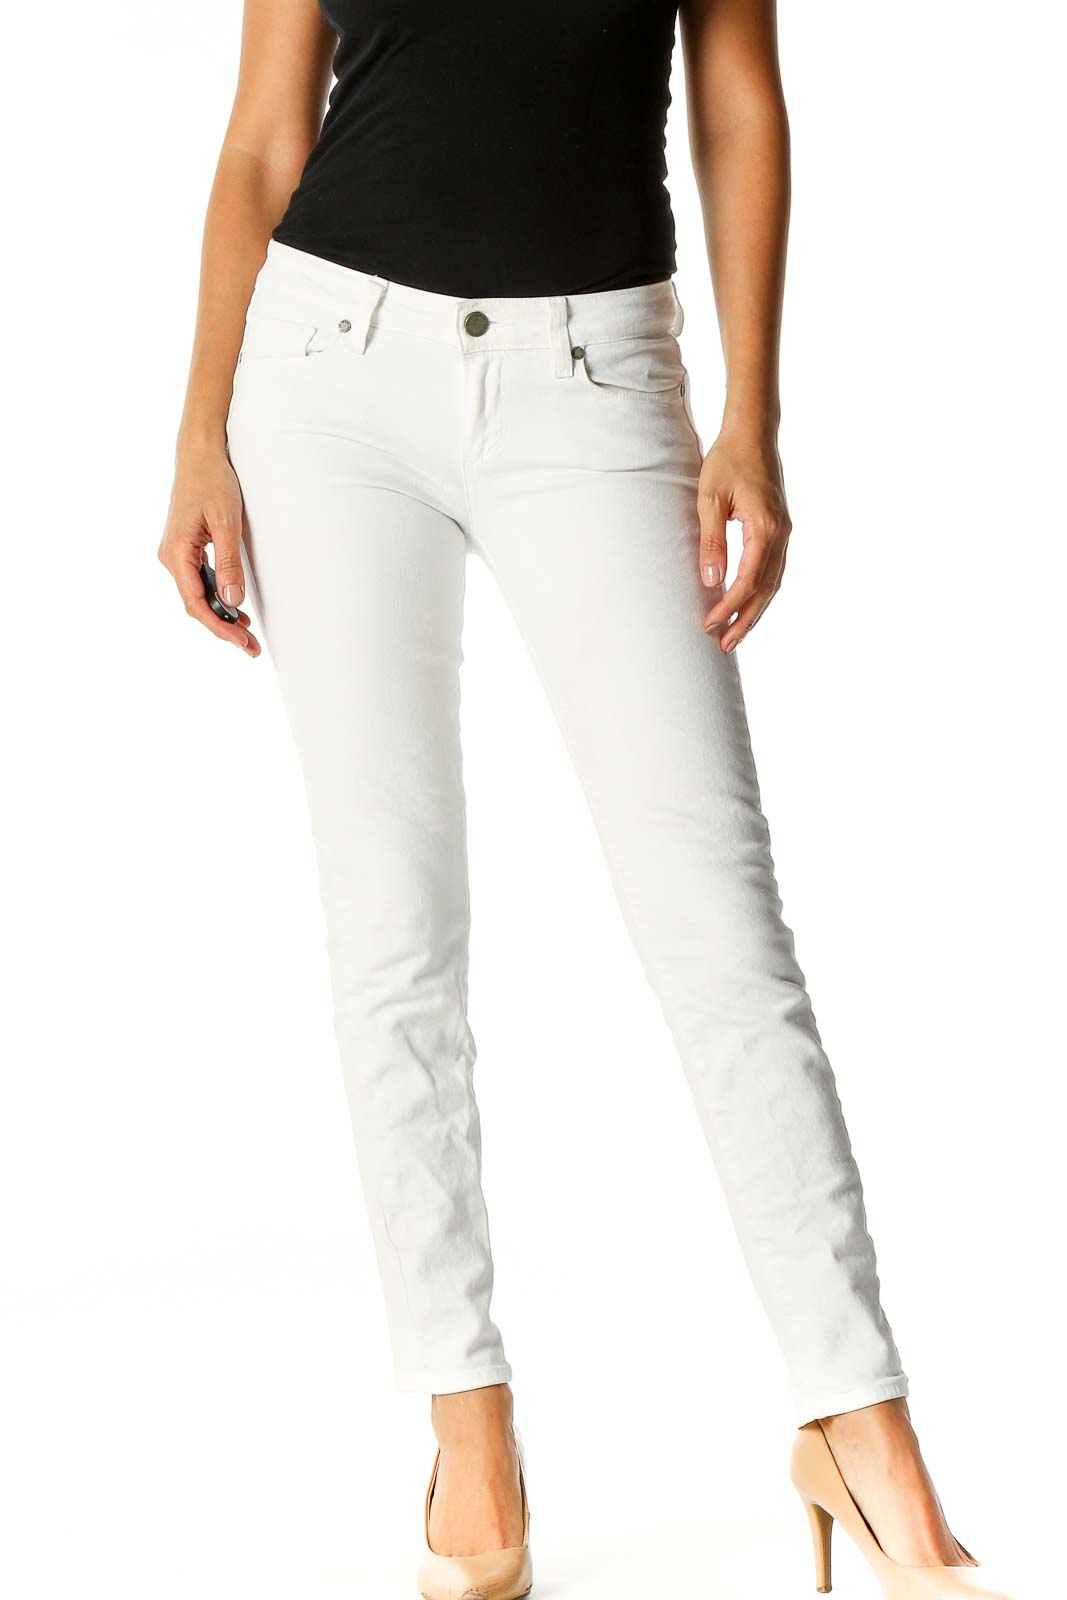 White Solid Casual Sweatpants Front